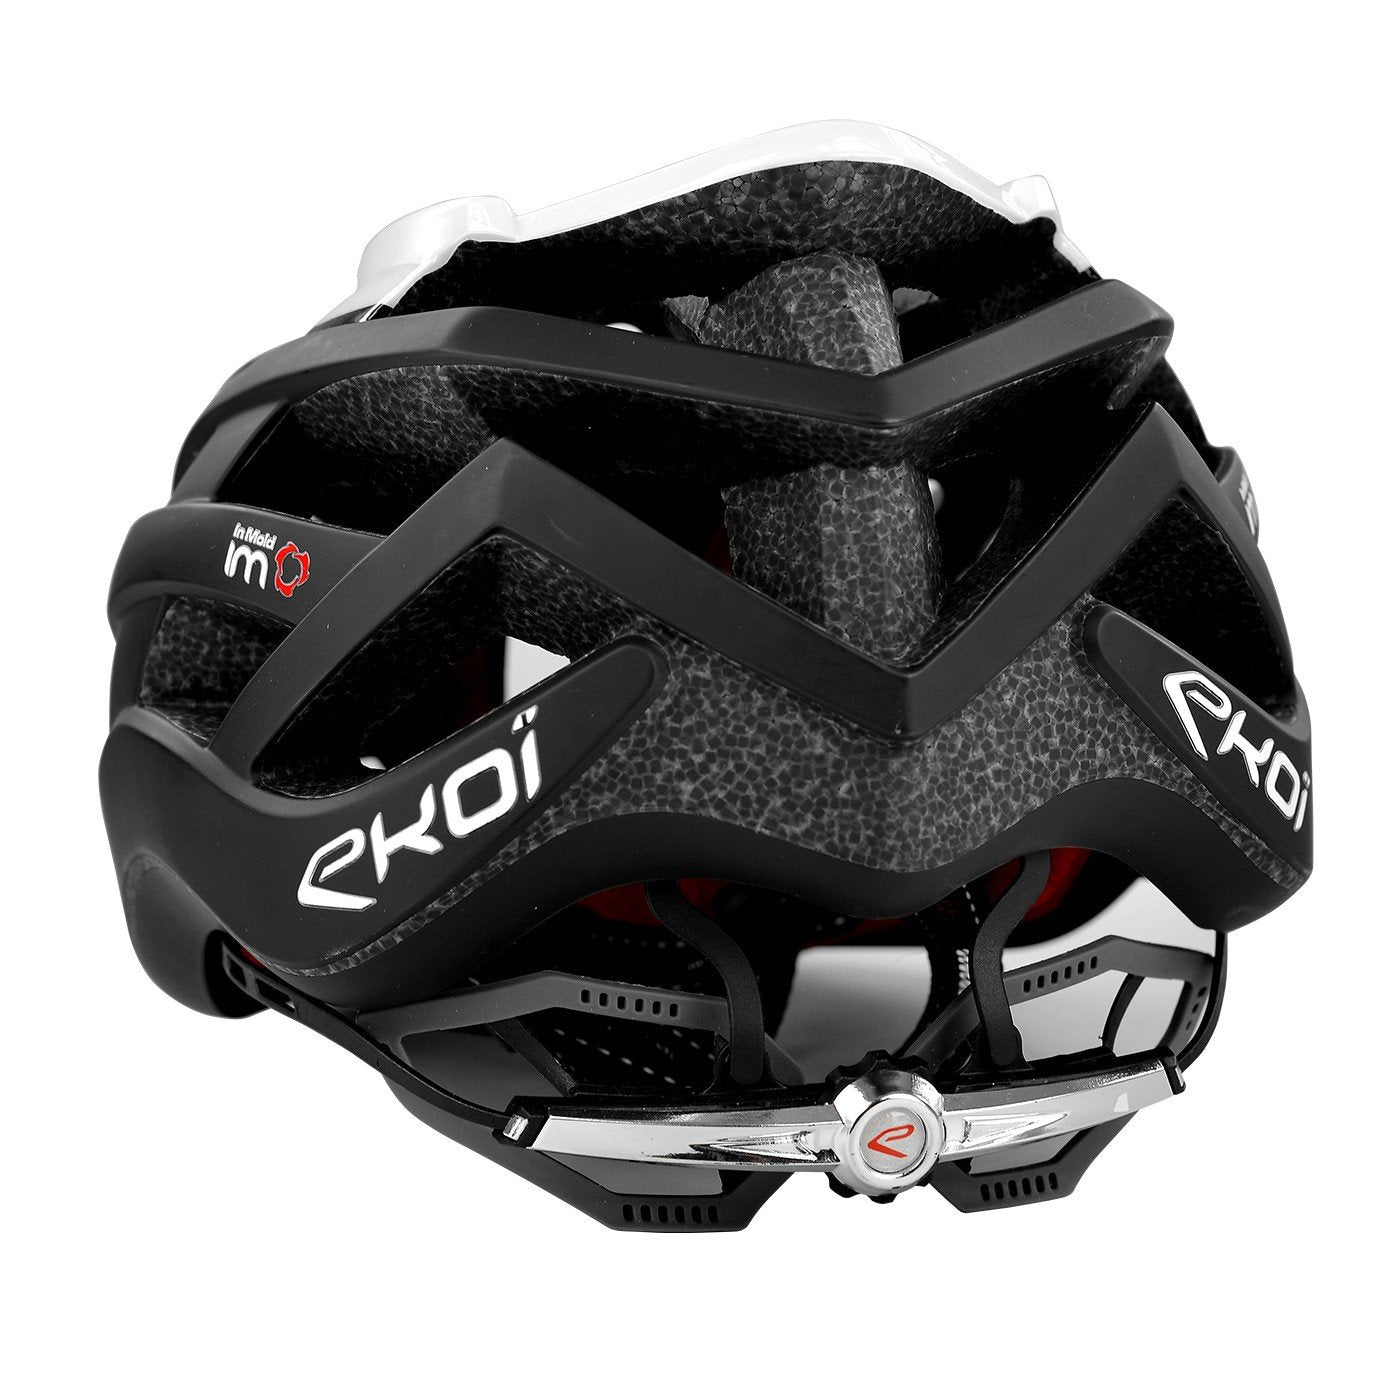 EKOI CORSA LIGHT WHITE BLACK HELMET